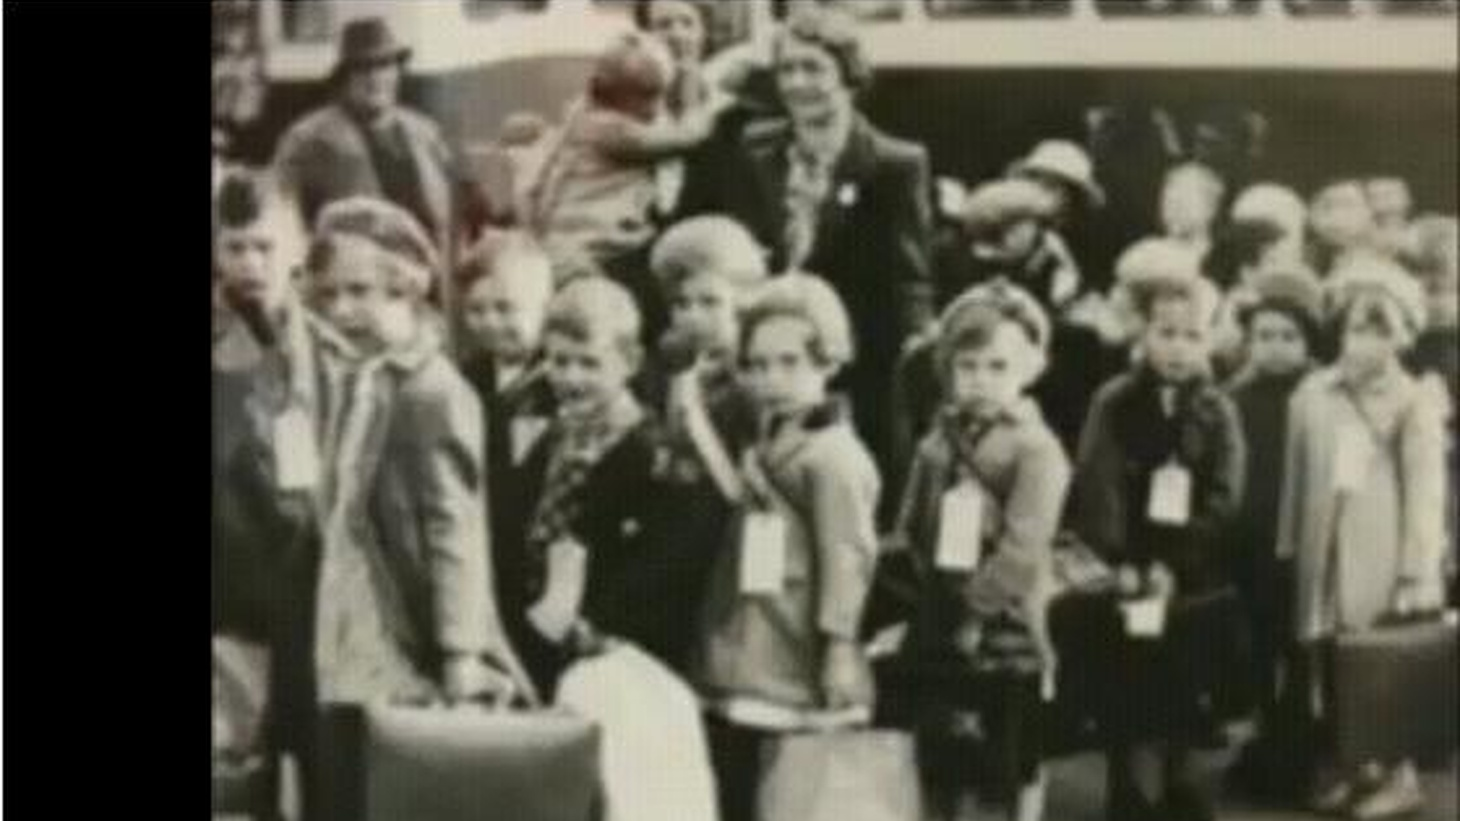 "In September, 1939, as war with Germany was about to be declared, the children of major British cities were ""evacuated."" Their parents had no idea where they were going or if they would ever see them again. Seventy years later, the memories of the remaining evacuees are still strong. KCRW reprises our 1989 documentary, narrated by evacuee Monica B. Morris, to commemorate the 70th anniversary of the evacuation. (Airs 2-3pm)"